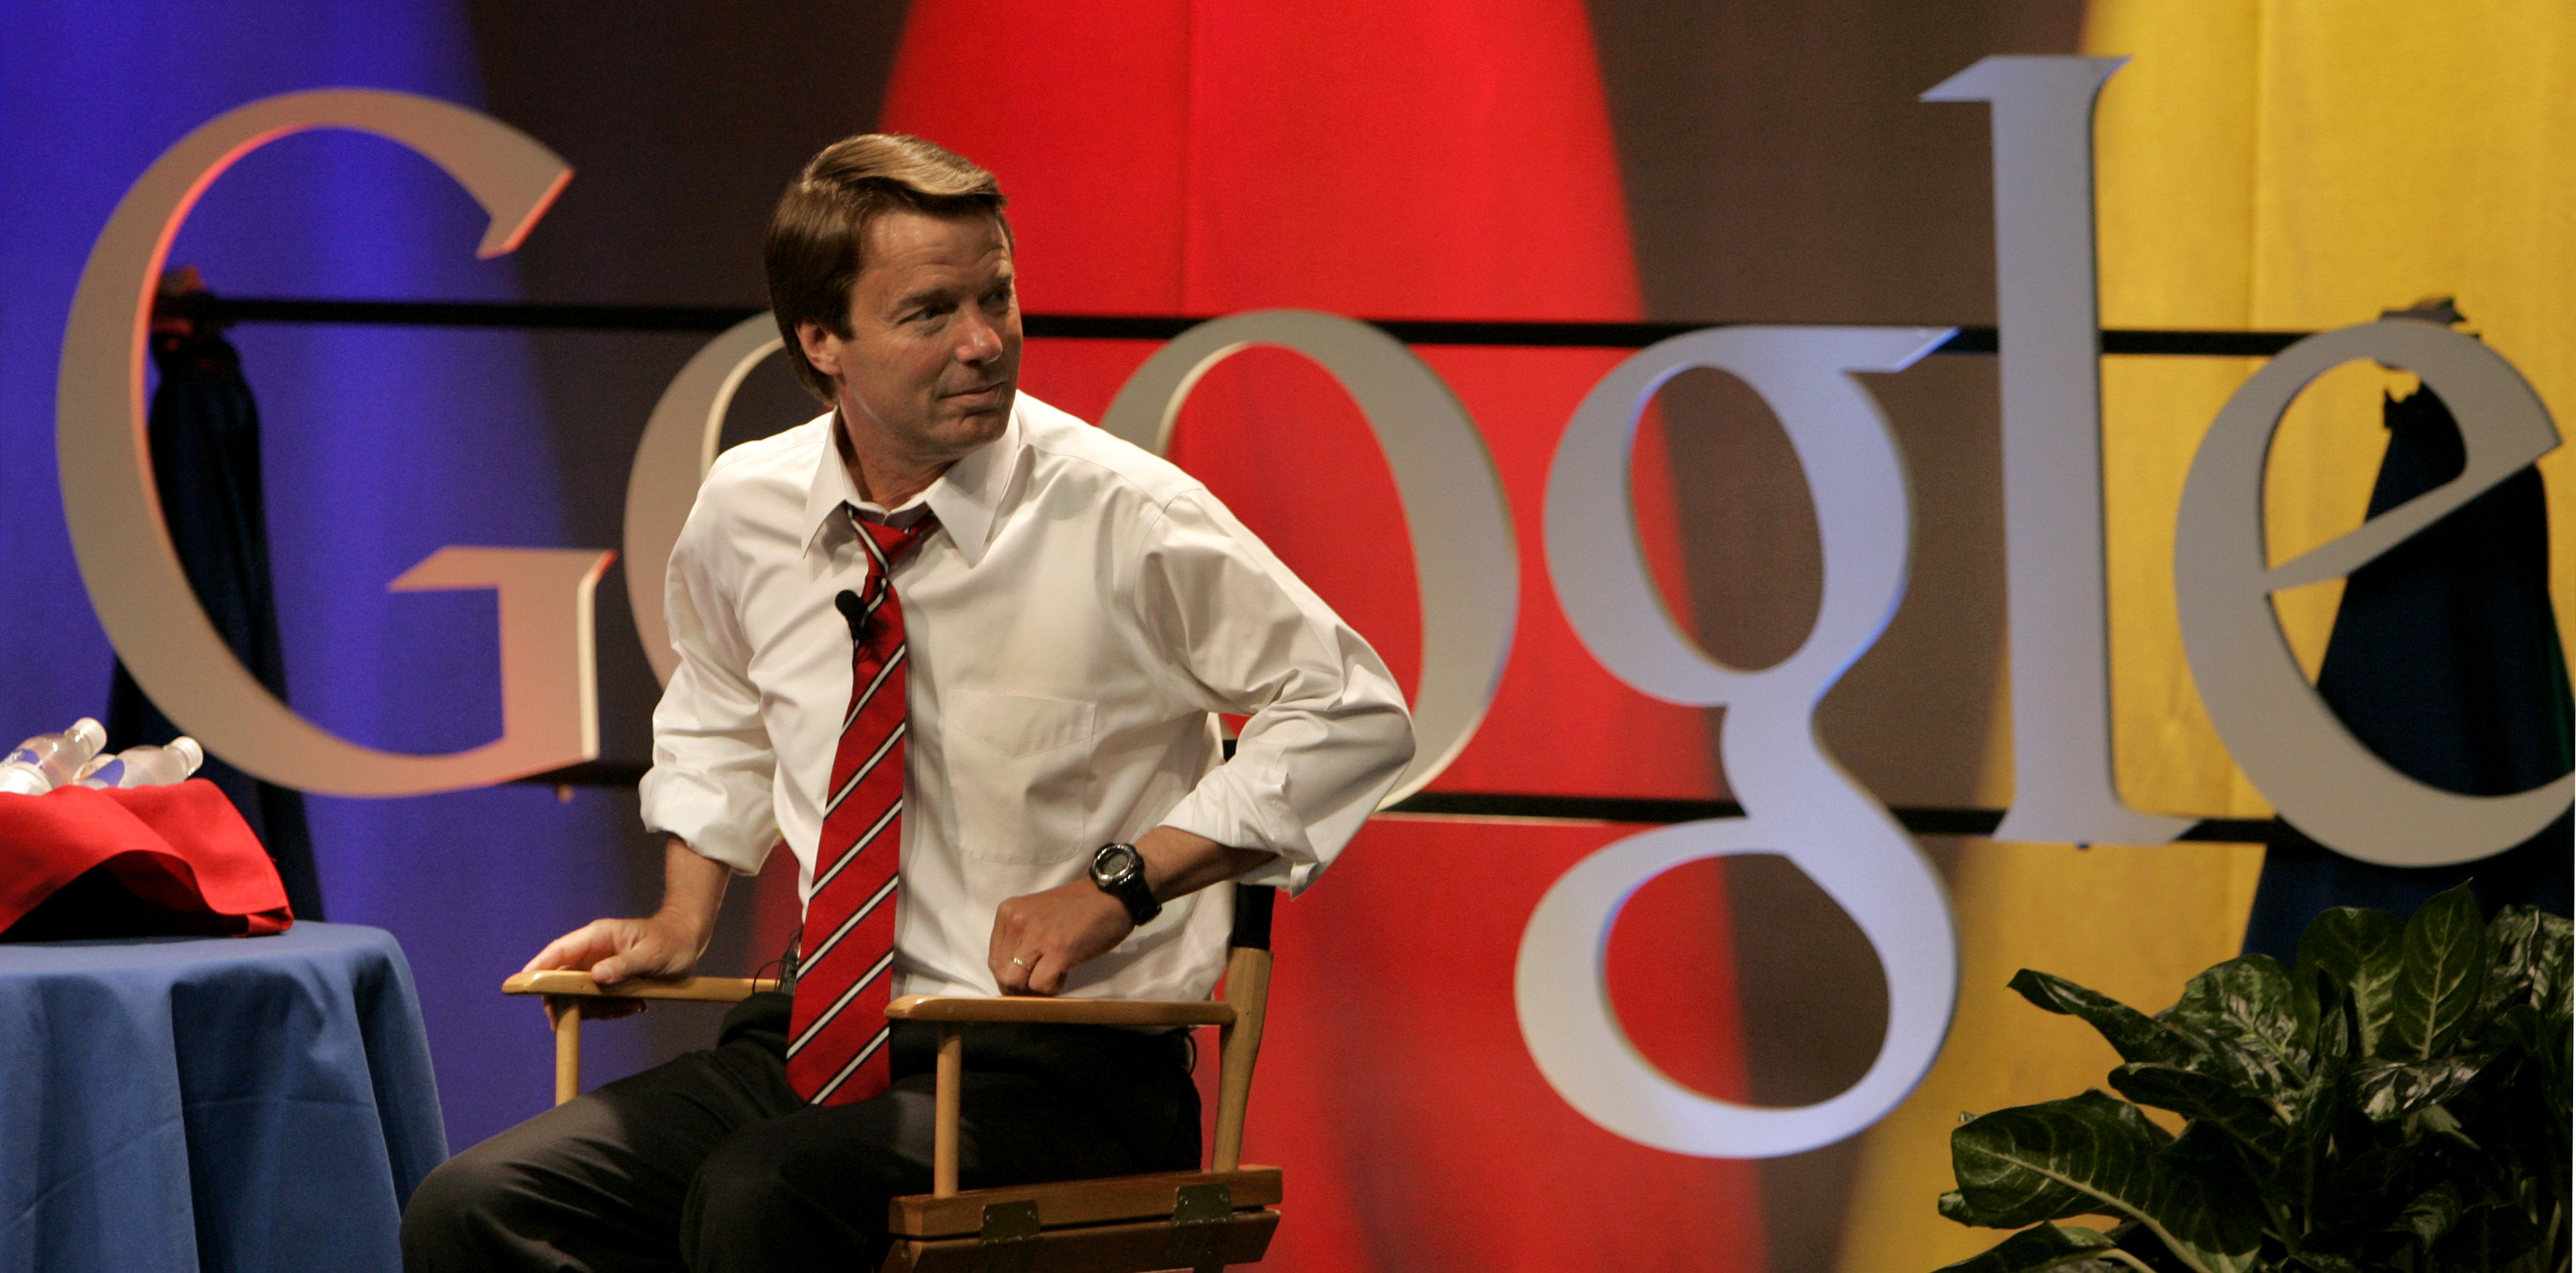 U.S. Democratic presidential hopeful John Edwards of North Carolina takes a seat before a town hall meeting at Google headquarters in Mountain View, California May 30, 2007. REUTERS/Robert Galbraith (UNITED STATES) - GM1DVJLNNIAA